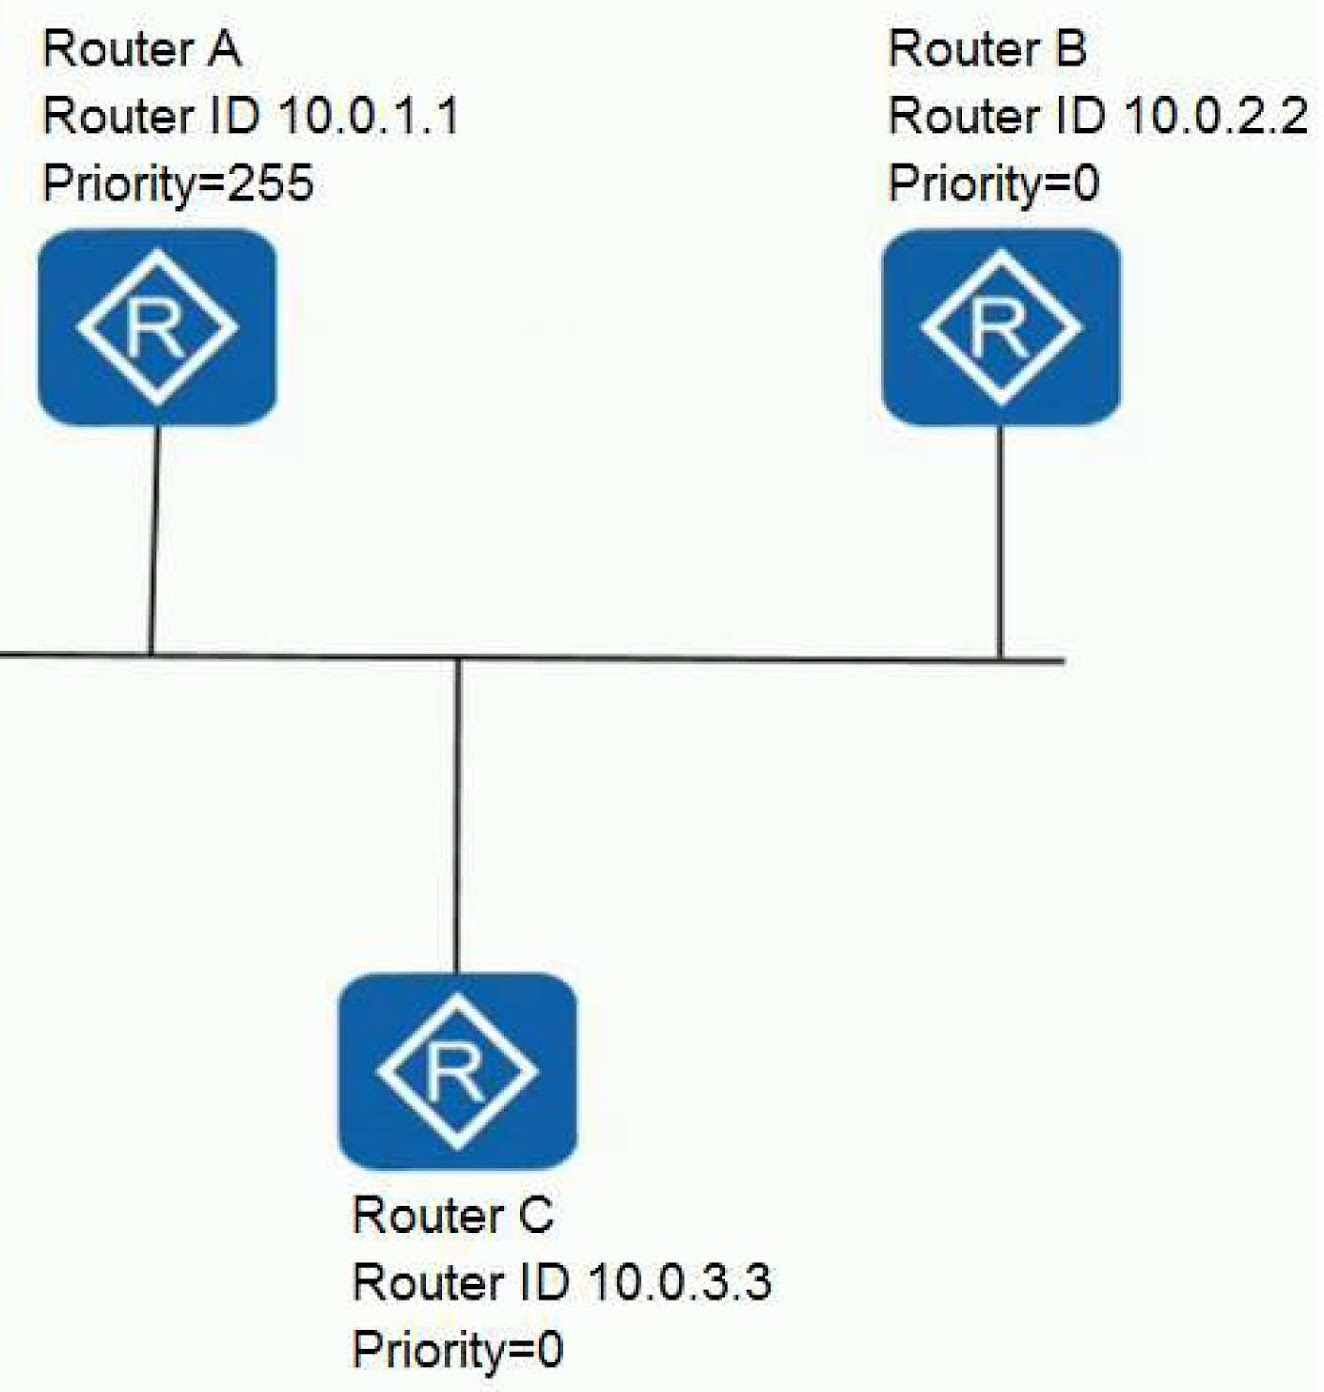 On the network shown in the figure, after the OSPF protocol state is stable, what is the neighbor status between Router A and Router B?